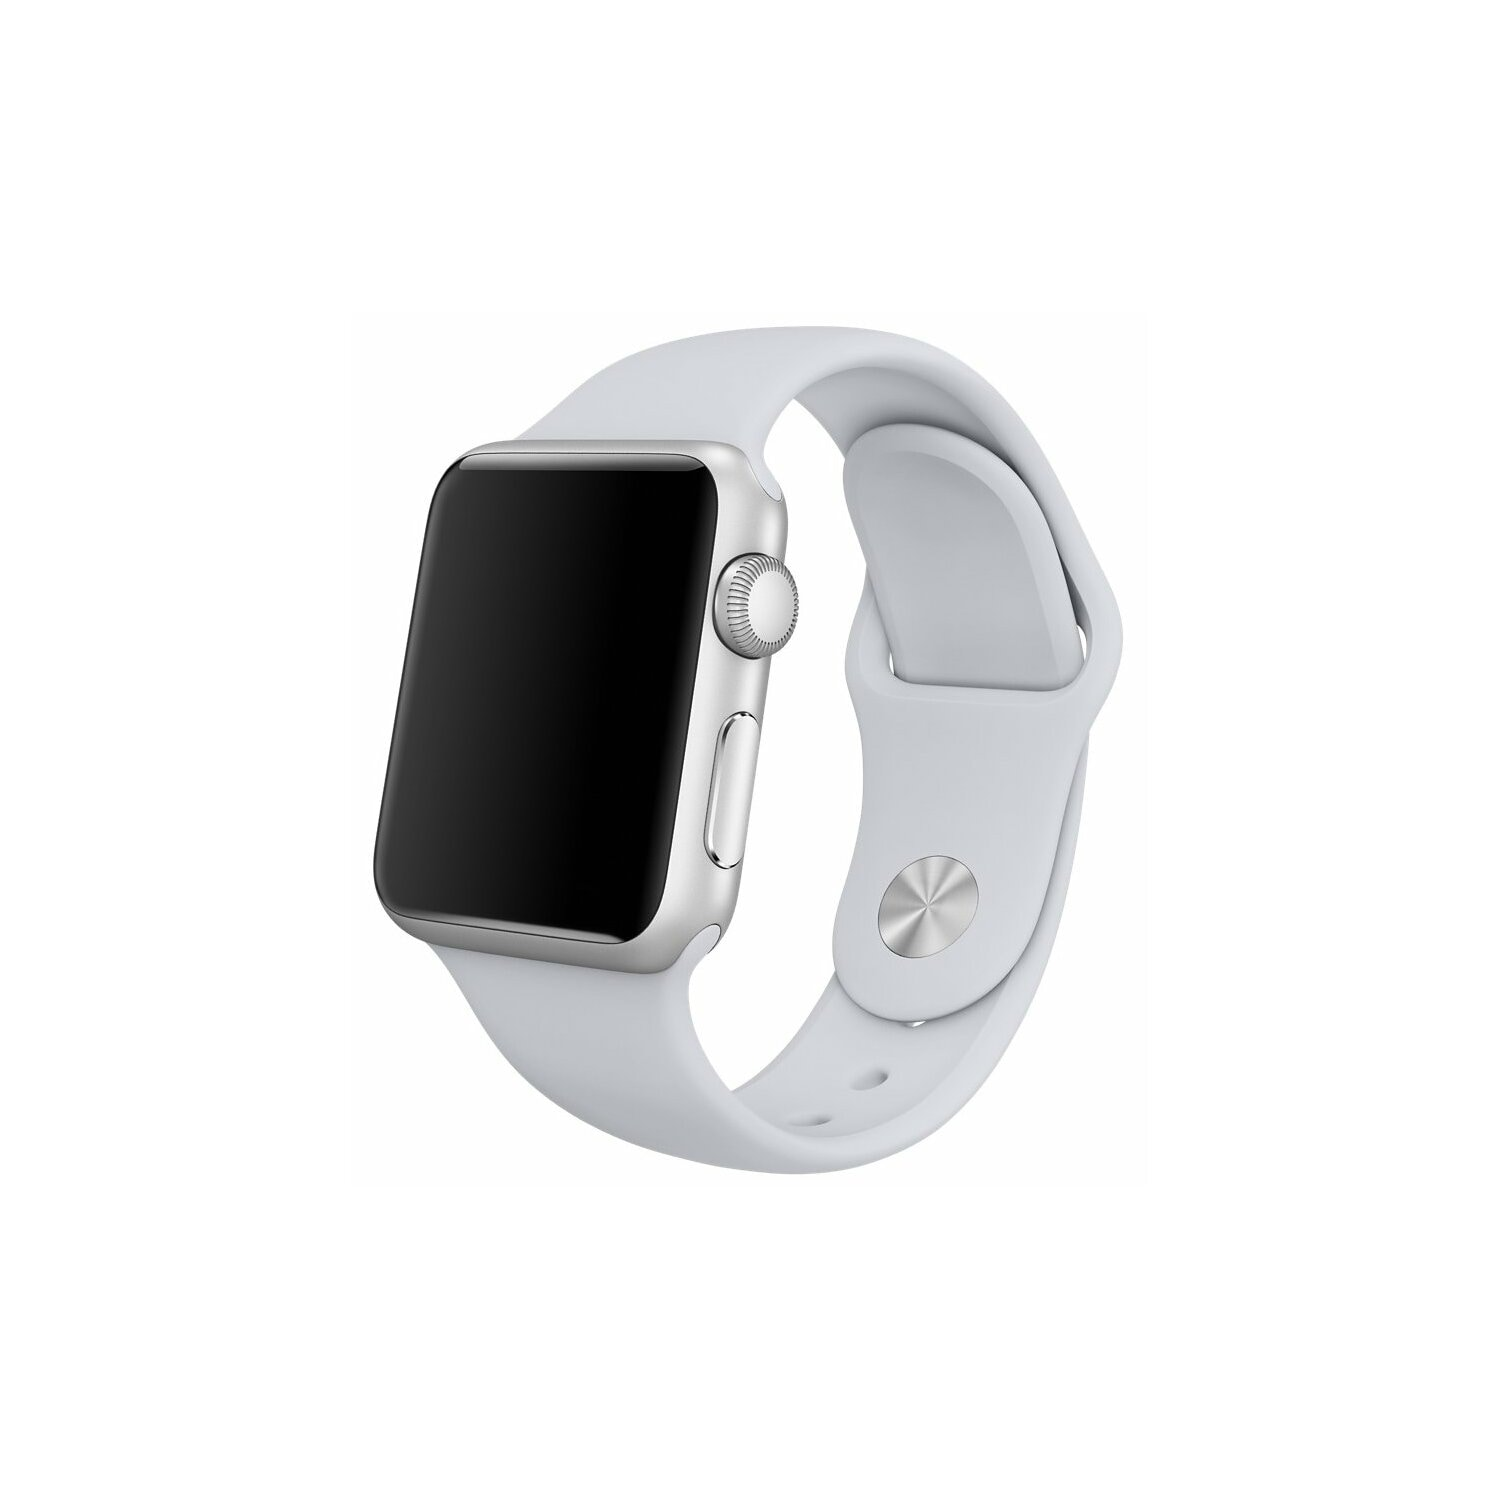 Pasek sportowy APPLE do Watch 38mm Mglisty MLJQ2ZM/A